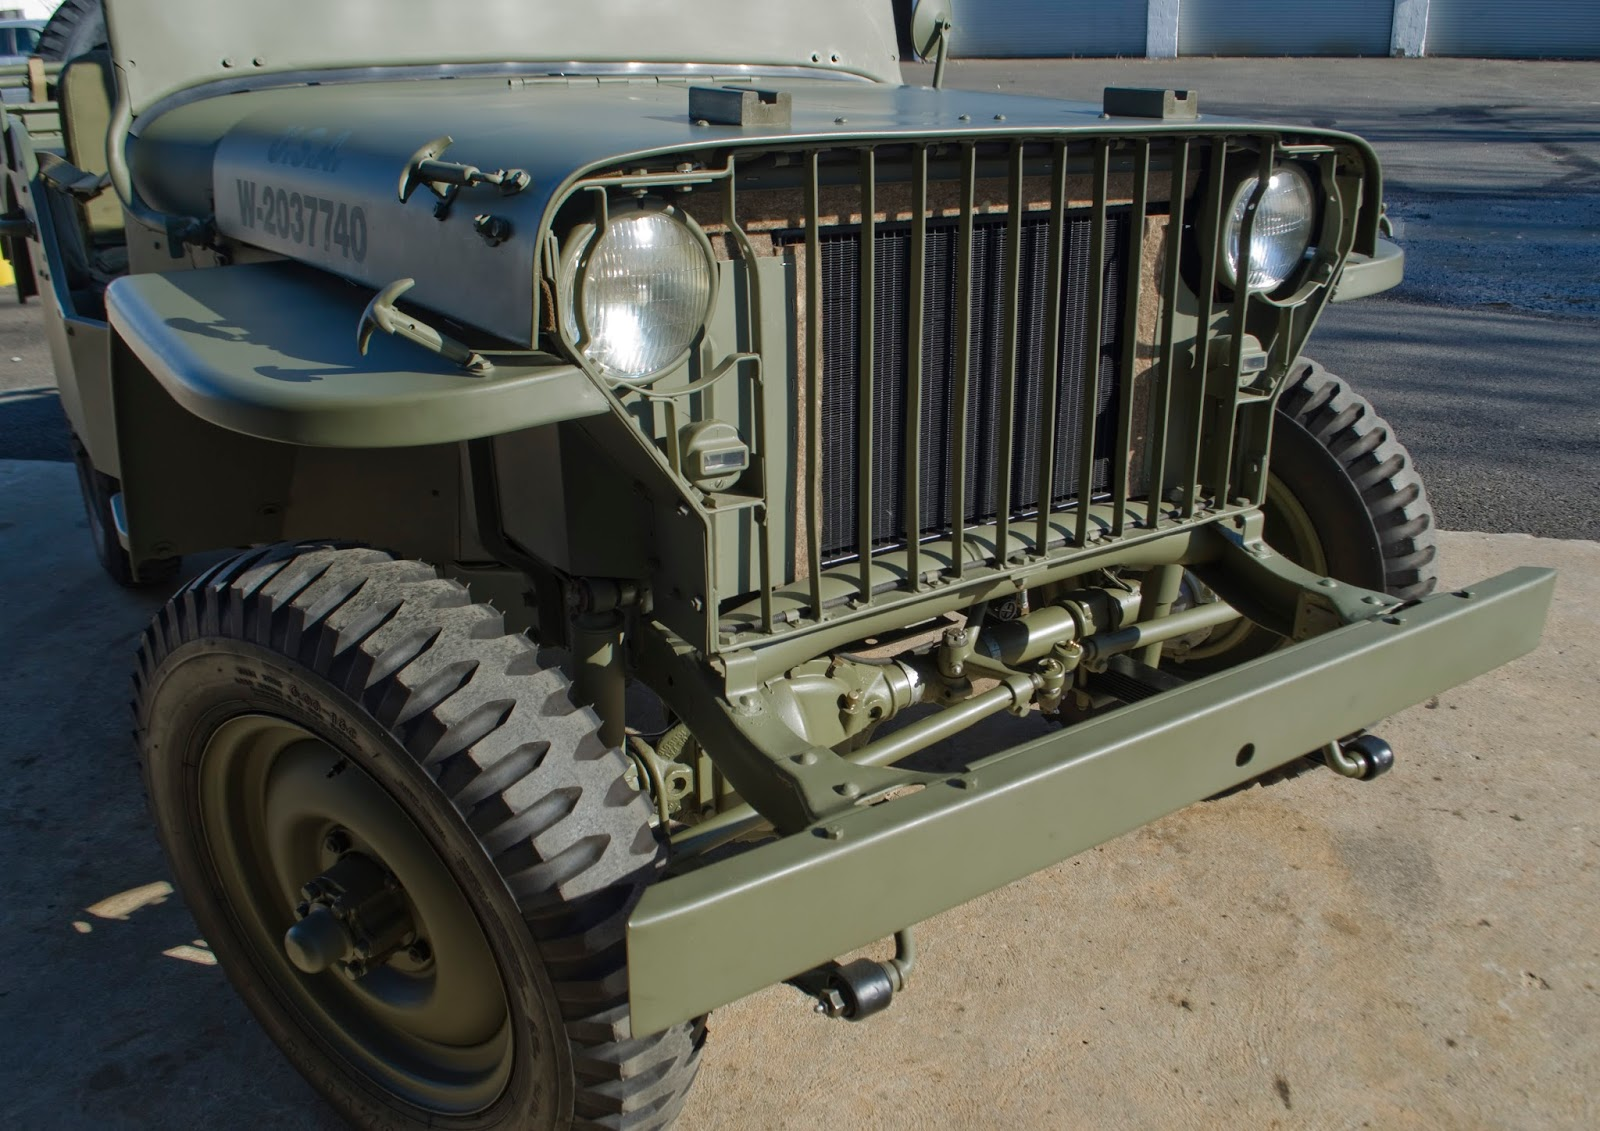 War Jeep Stories The Original Willys 1941 Slat Grille Jeeps On Filter Box Owner Of Army Parts Inc Now For Sale This Features Details Unlike Many Restorations And Is A Prime Example Over 100 Aspects Unique